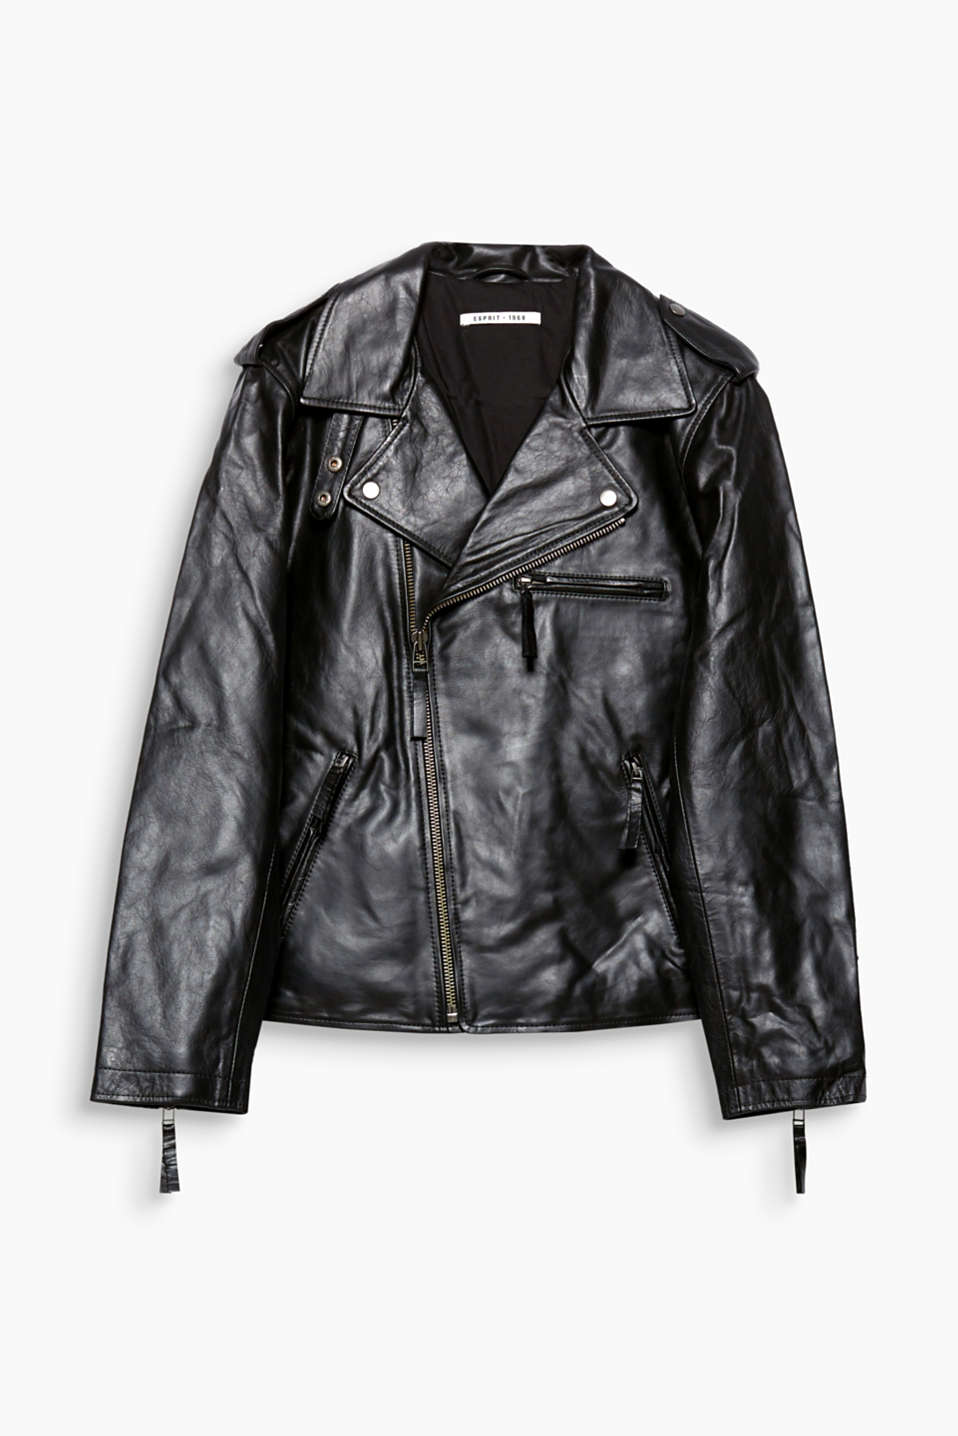 Giving your looks a rock appeal: this biker jacket in high-quality, smooth buffalo leather.